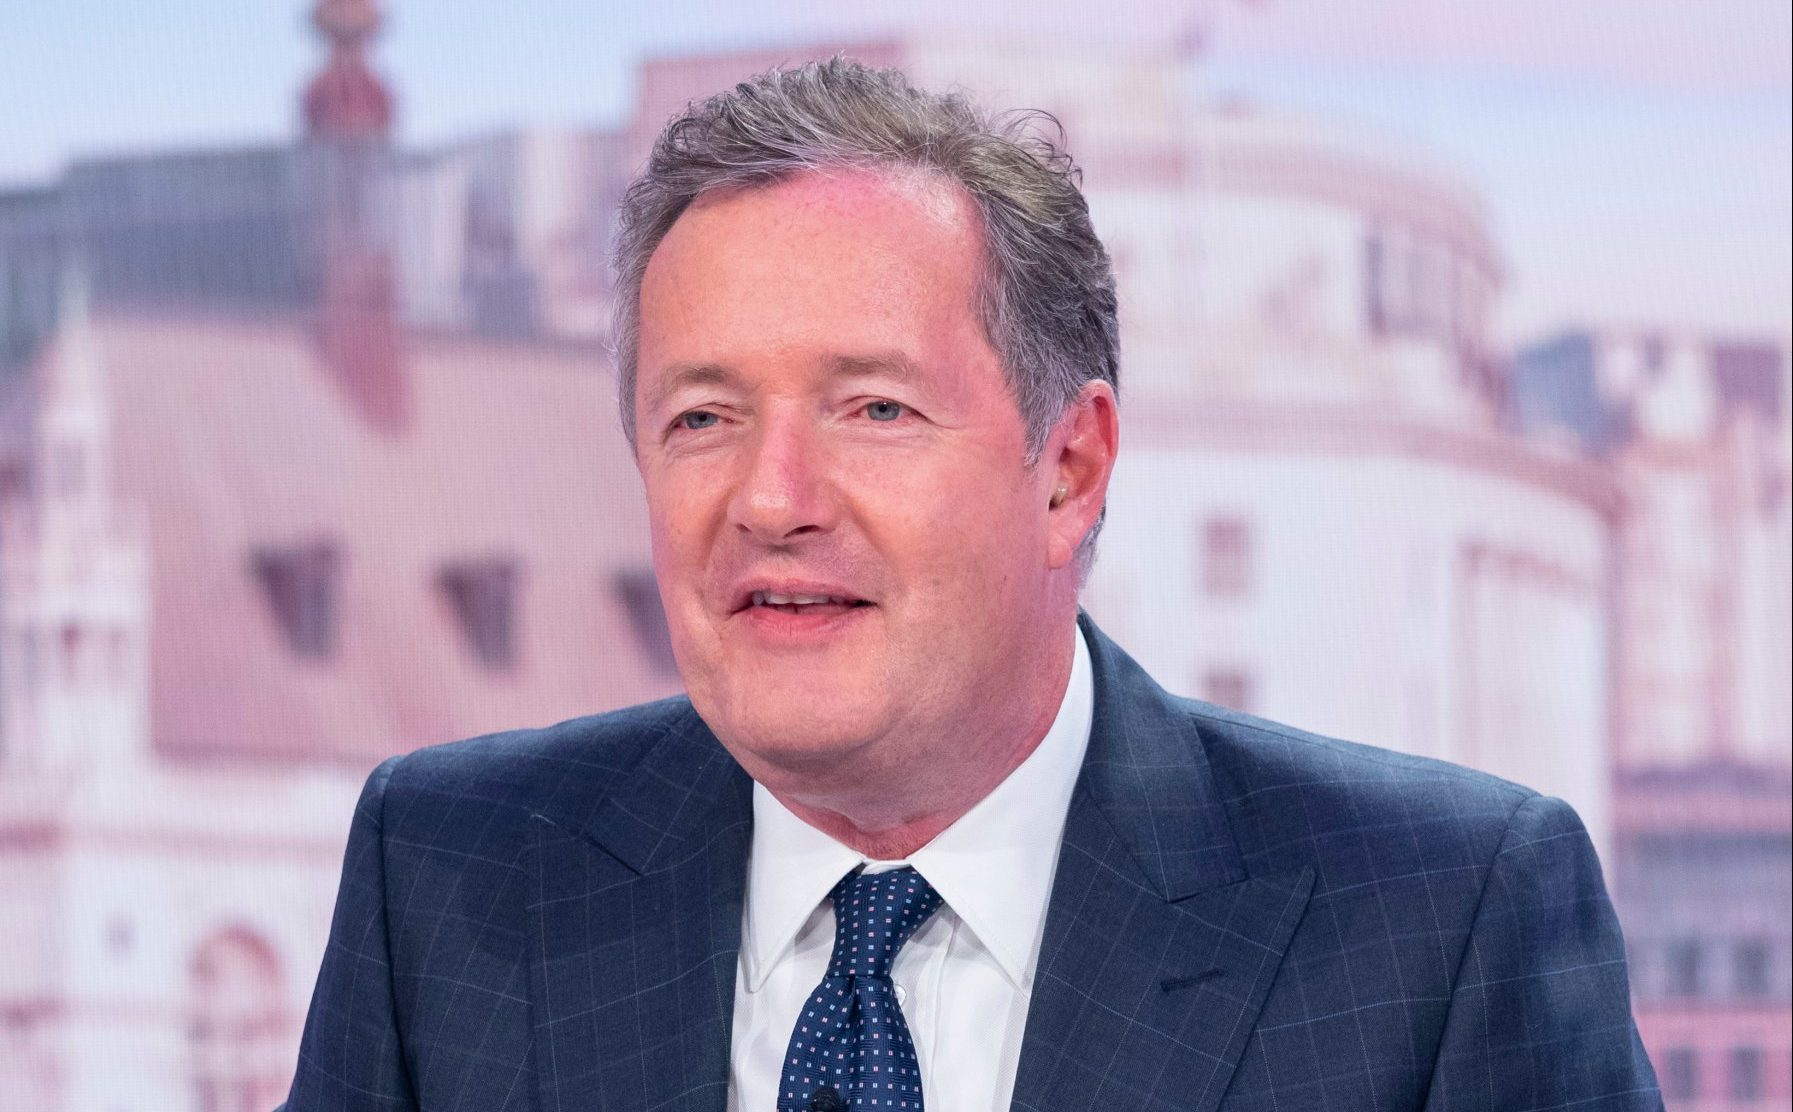 Piers Morgan kicks off over 'truly pathetic' LGBT sandwiches from Marks & Spencer